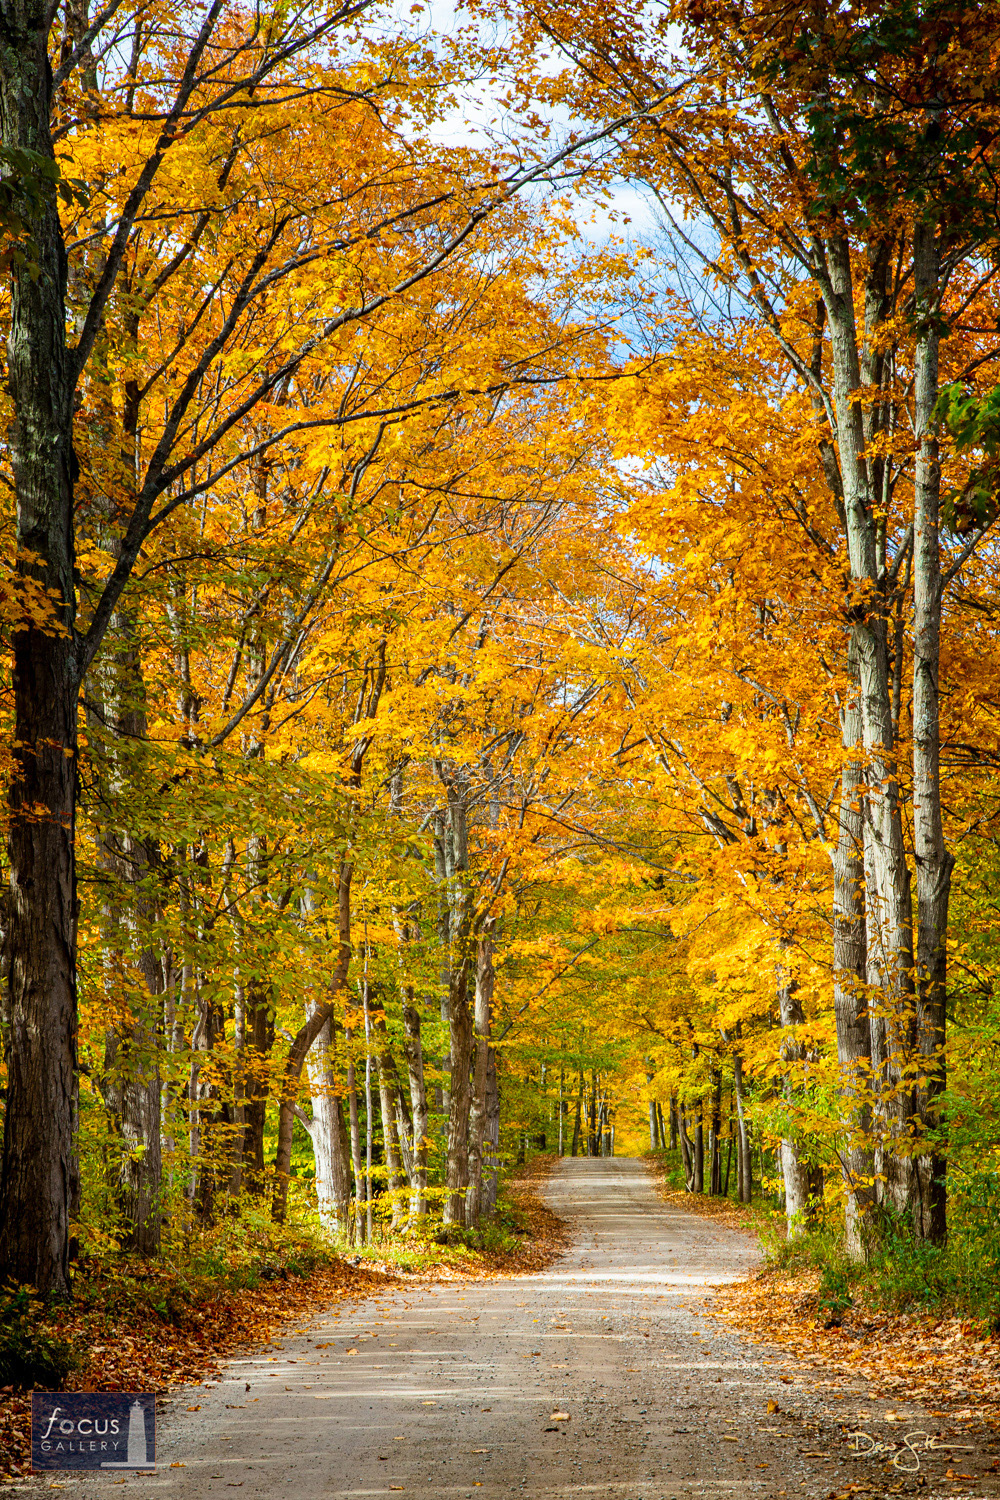 Photo © Drew Smith This image was taken on Voice Road, which leads to North Bar Lake in the Sleeping Bear Dunes, on a beautiful...